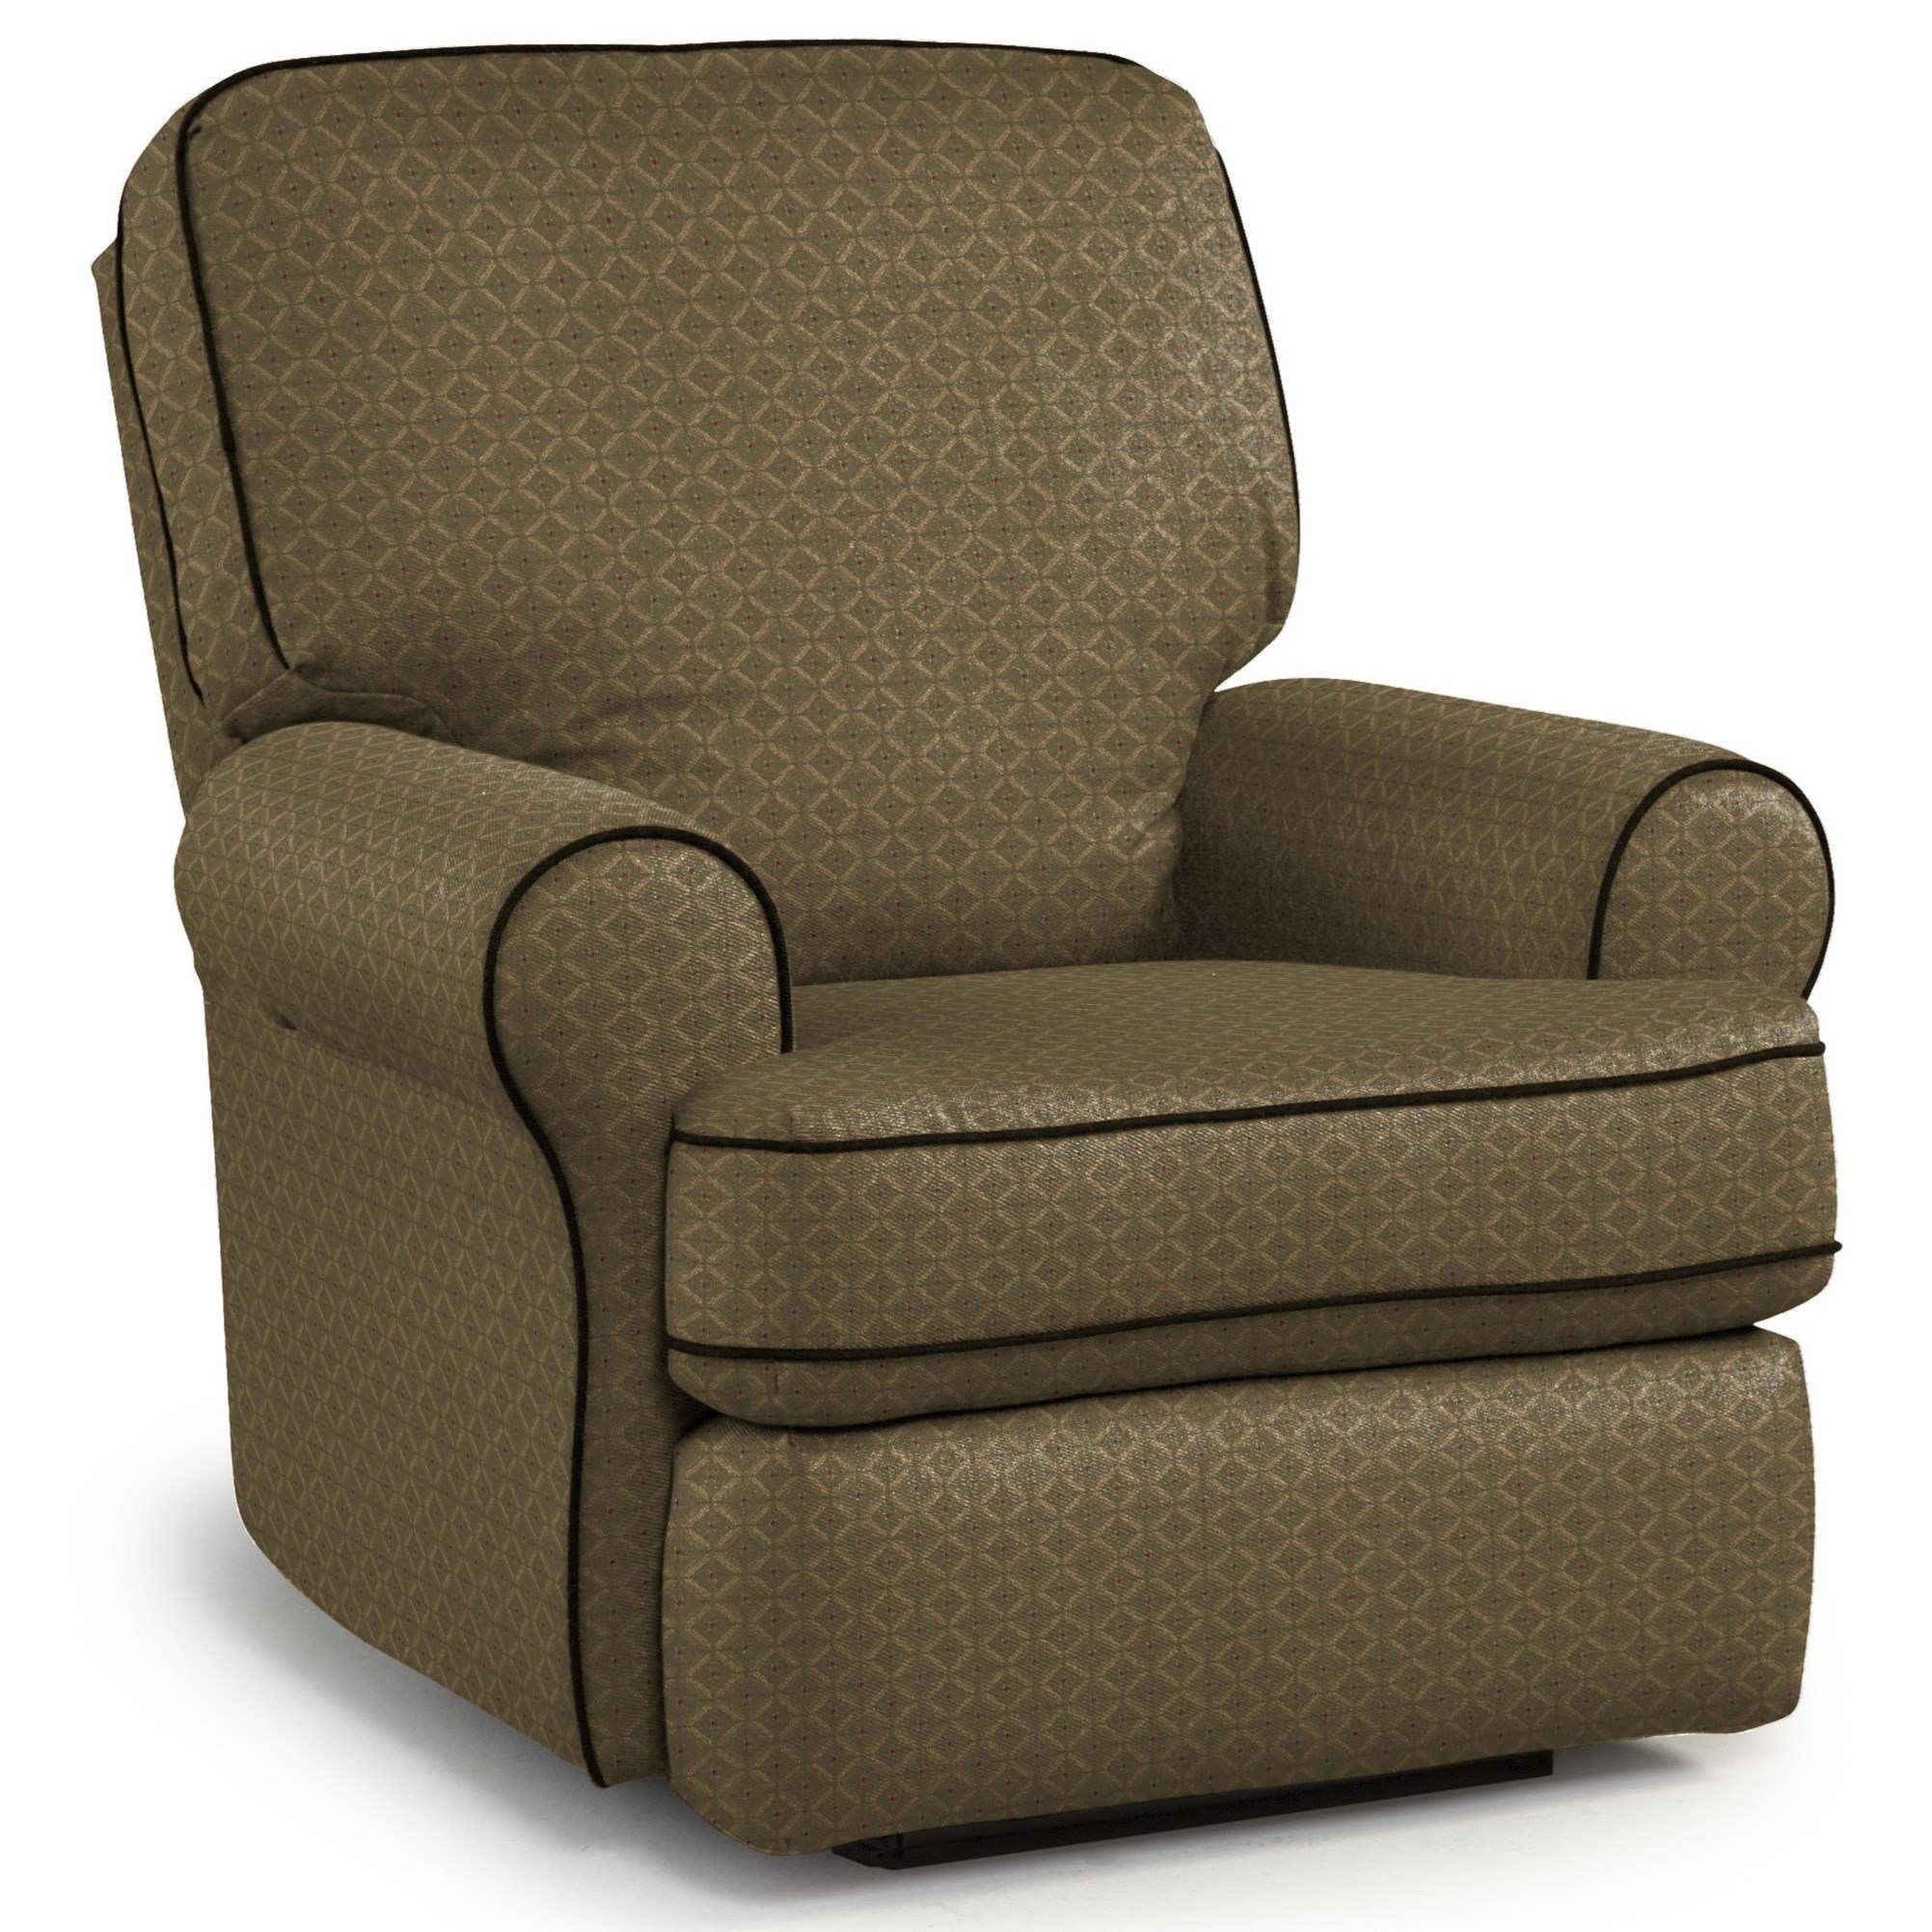 Best Home Furnishings Tryp 5ni25sc Swivel Glider Recliner